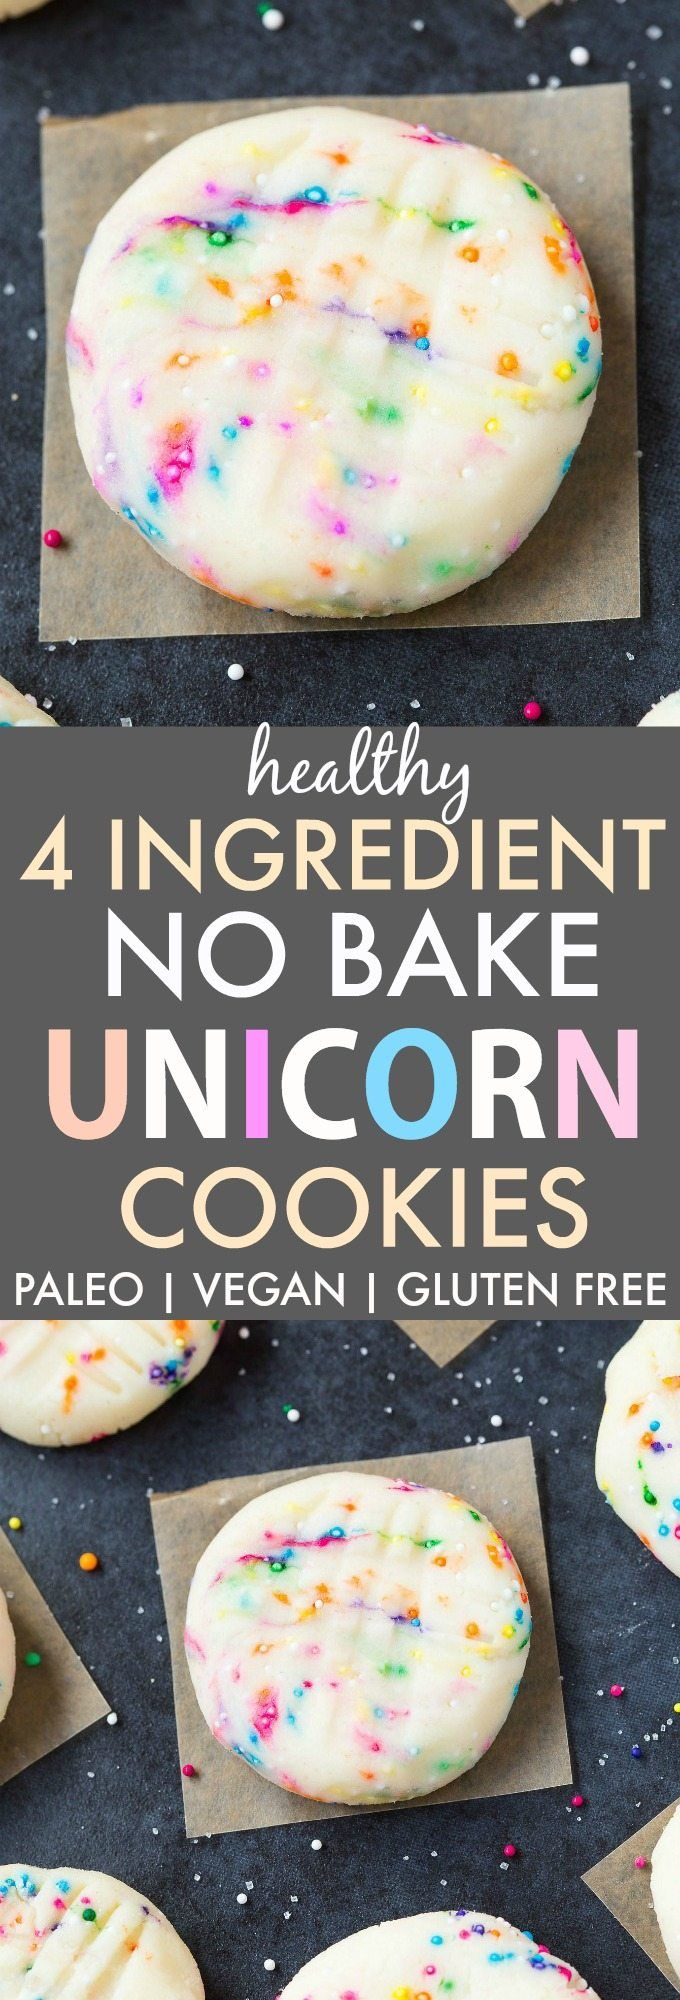 Healthy No Bake Unicorn Cookies (Paleo, Vegan, Gluten Free)- Quick, easy and delicious cookies using 4 ingredients inspired by the Starbucks Frappucino!